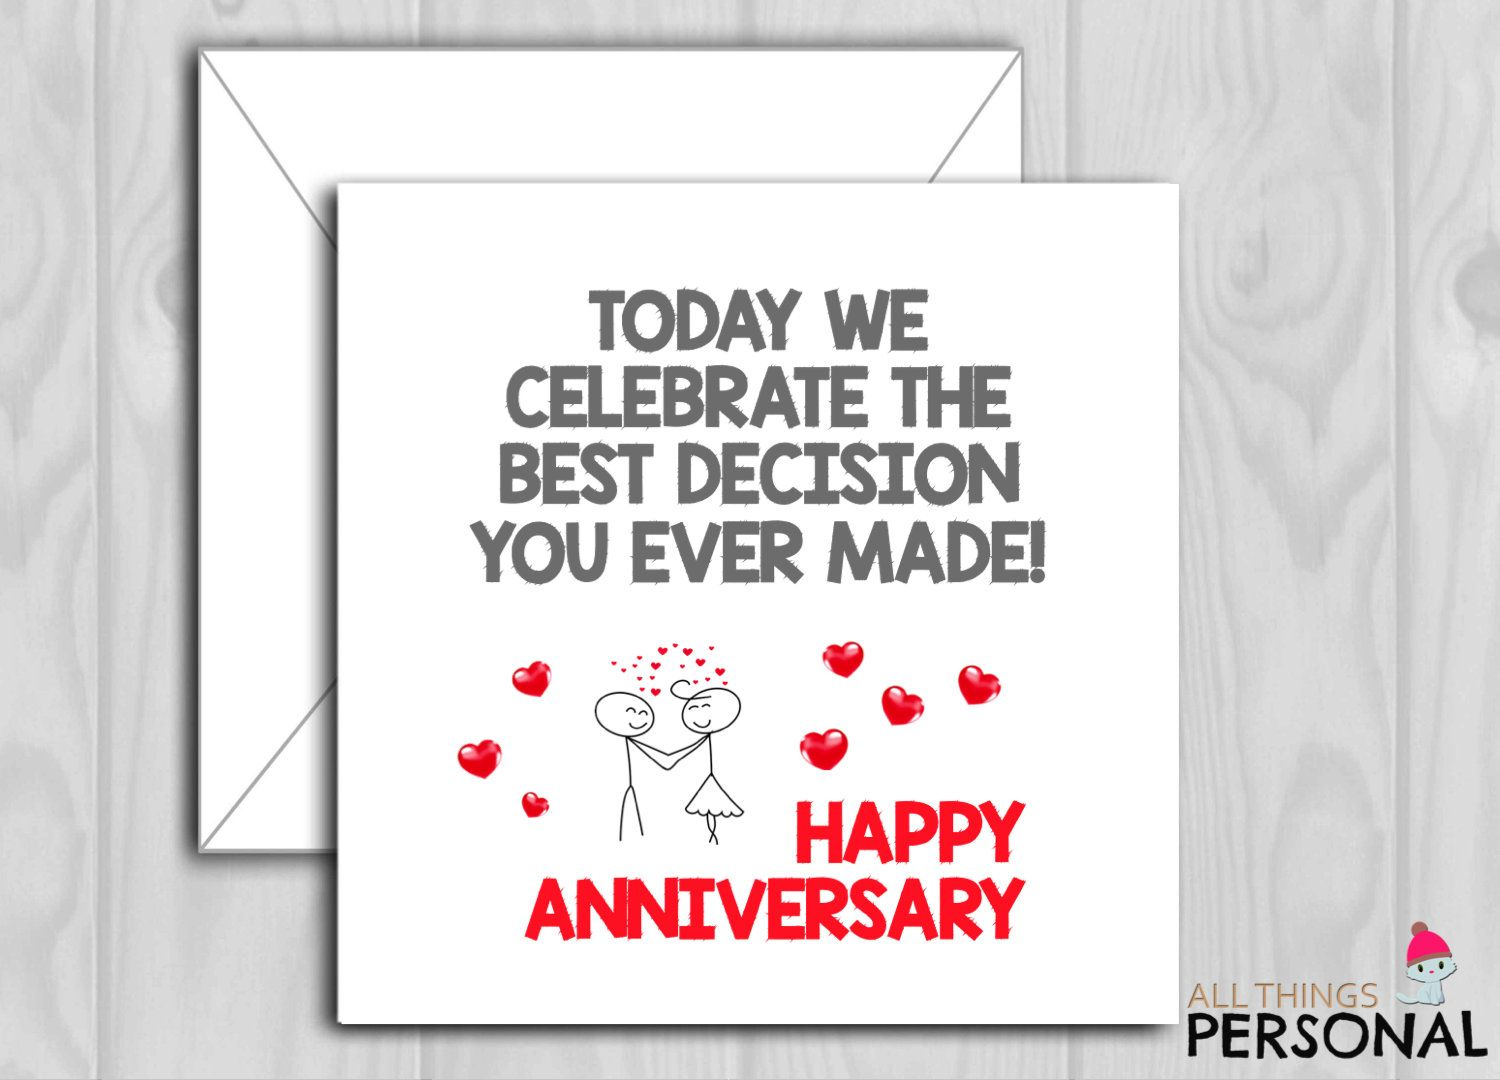 Funny Anniversary Card For Husband Or Wife On Wedding Anniversary